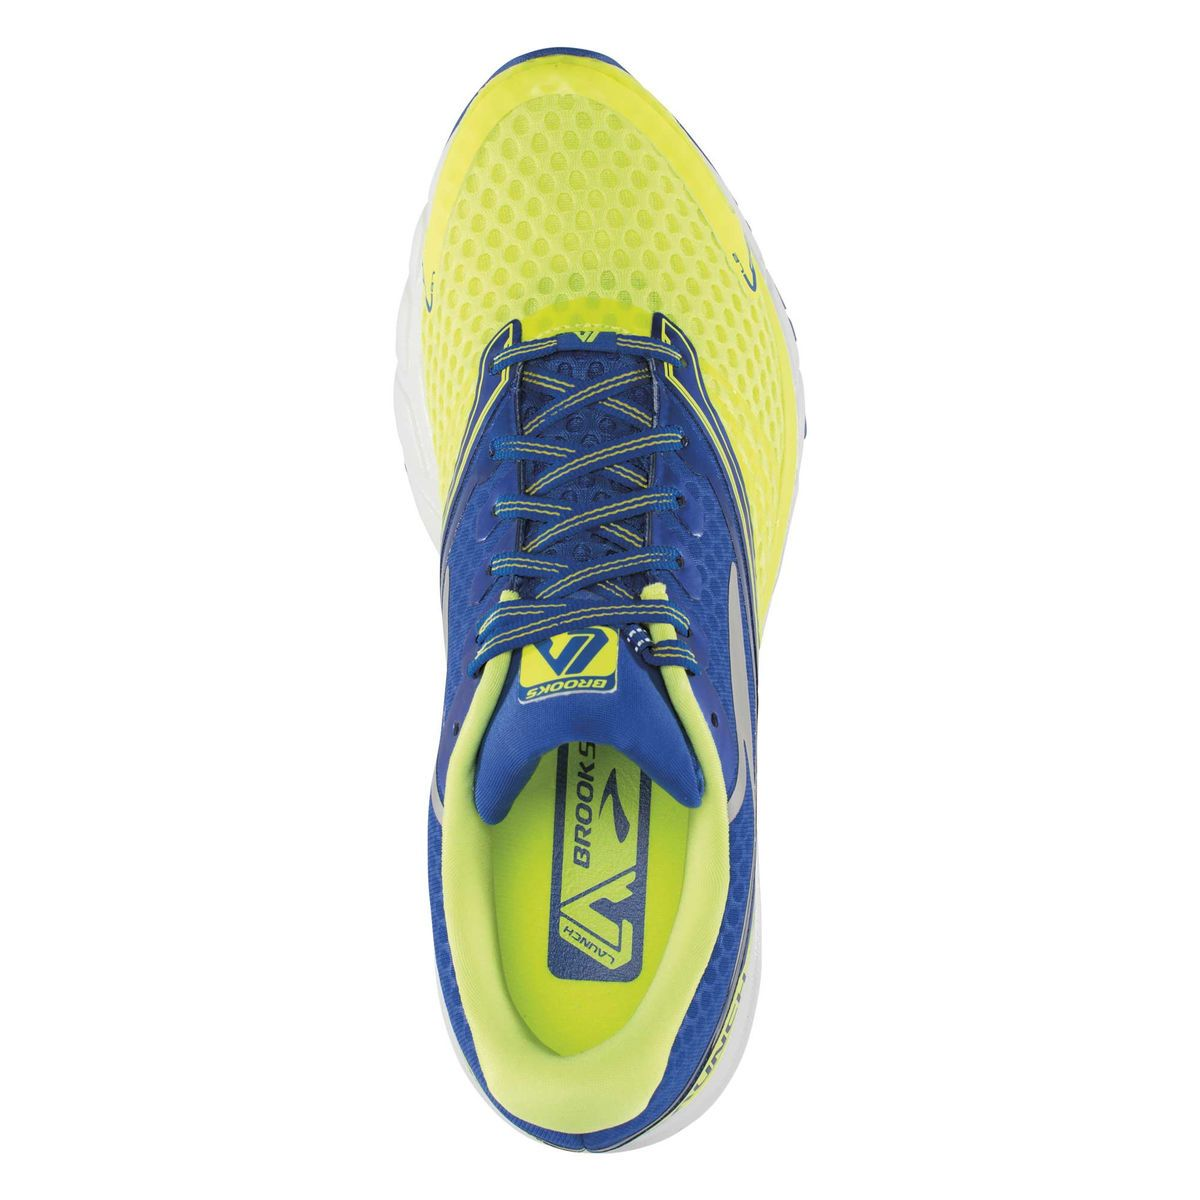 6f11db3c77b2a Brooks Launch 2 Men s Lightweight Running Shoes. (SS)